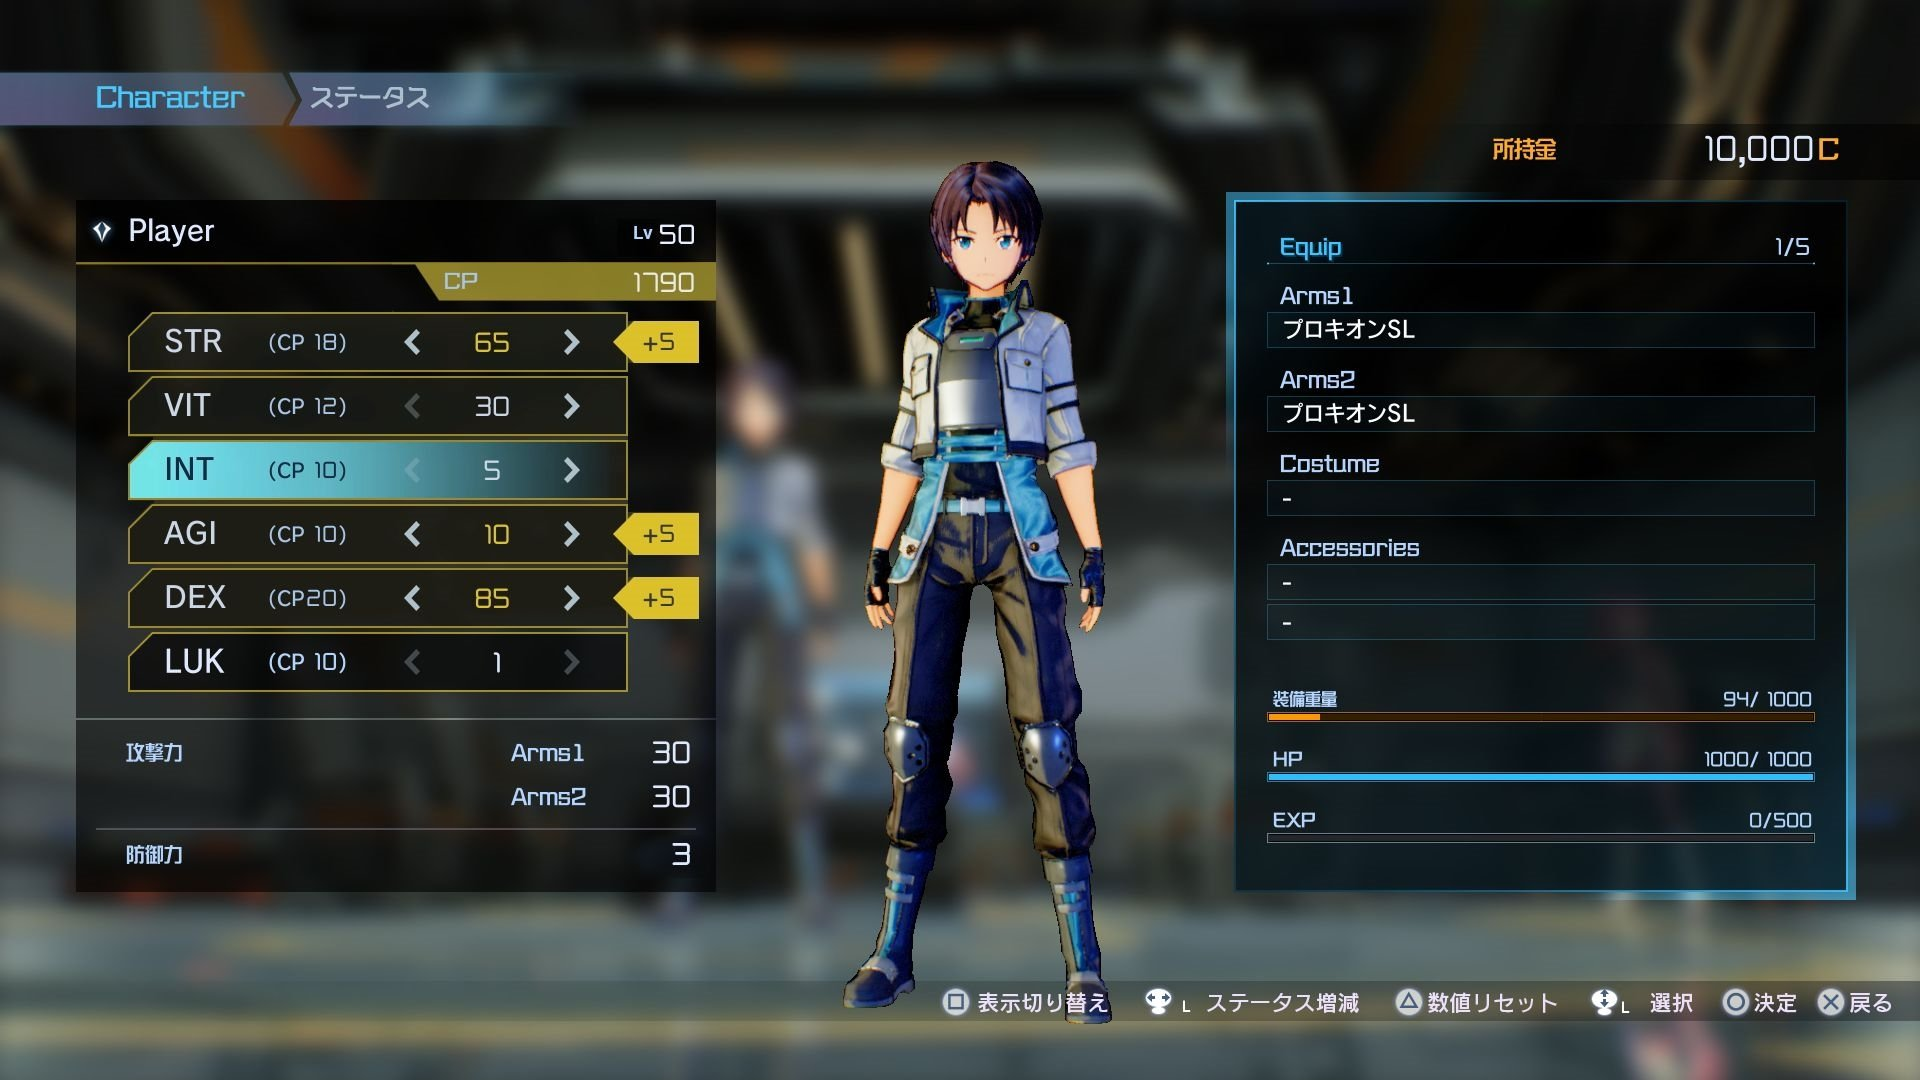 Sword Art Online Fatal Bullet Details Characters and